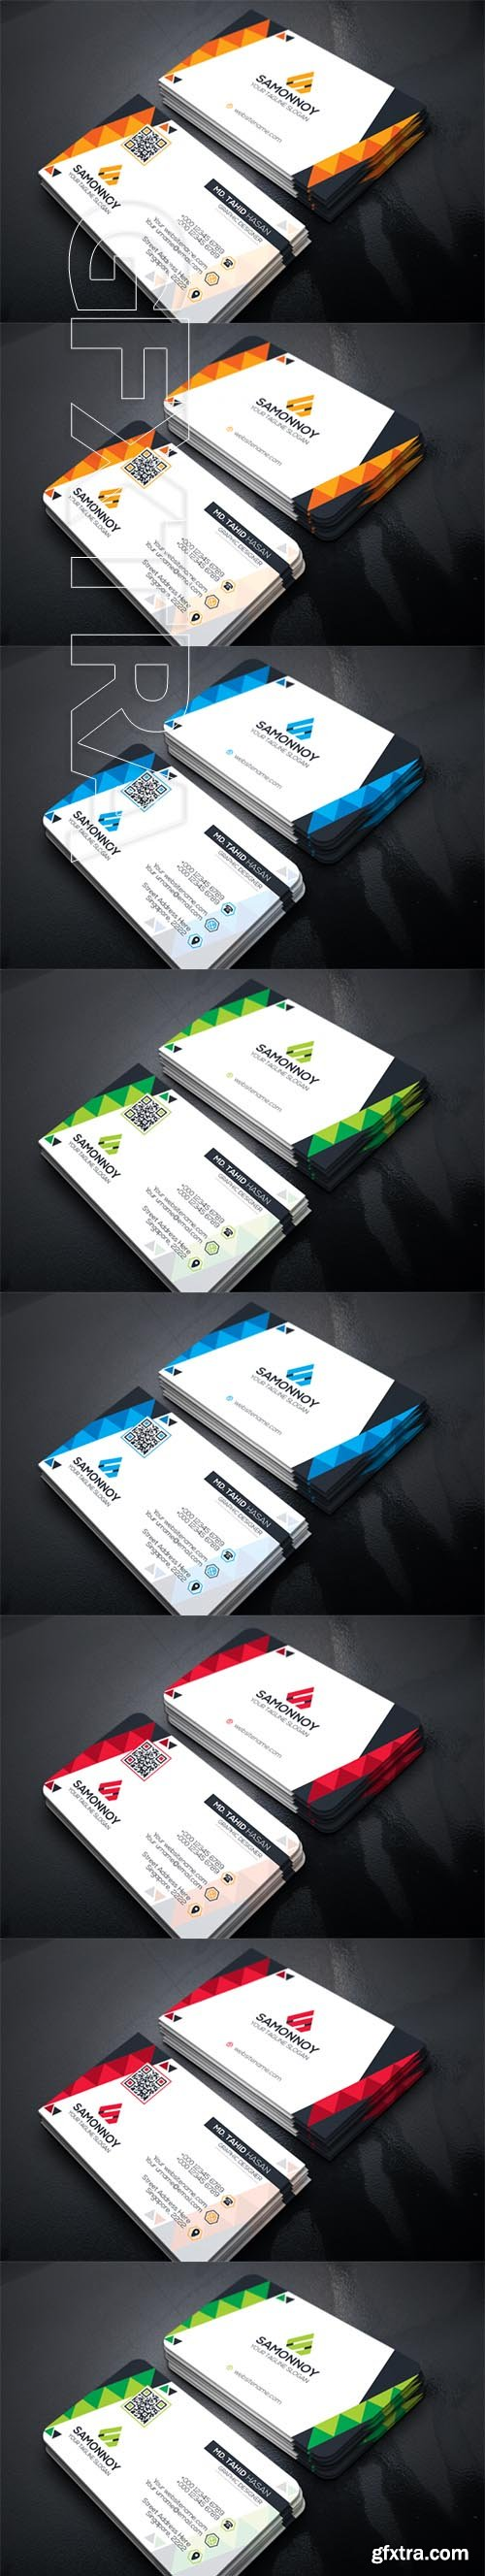 Business Card sets